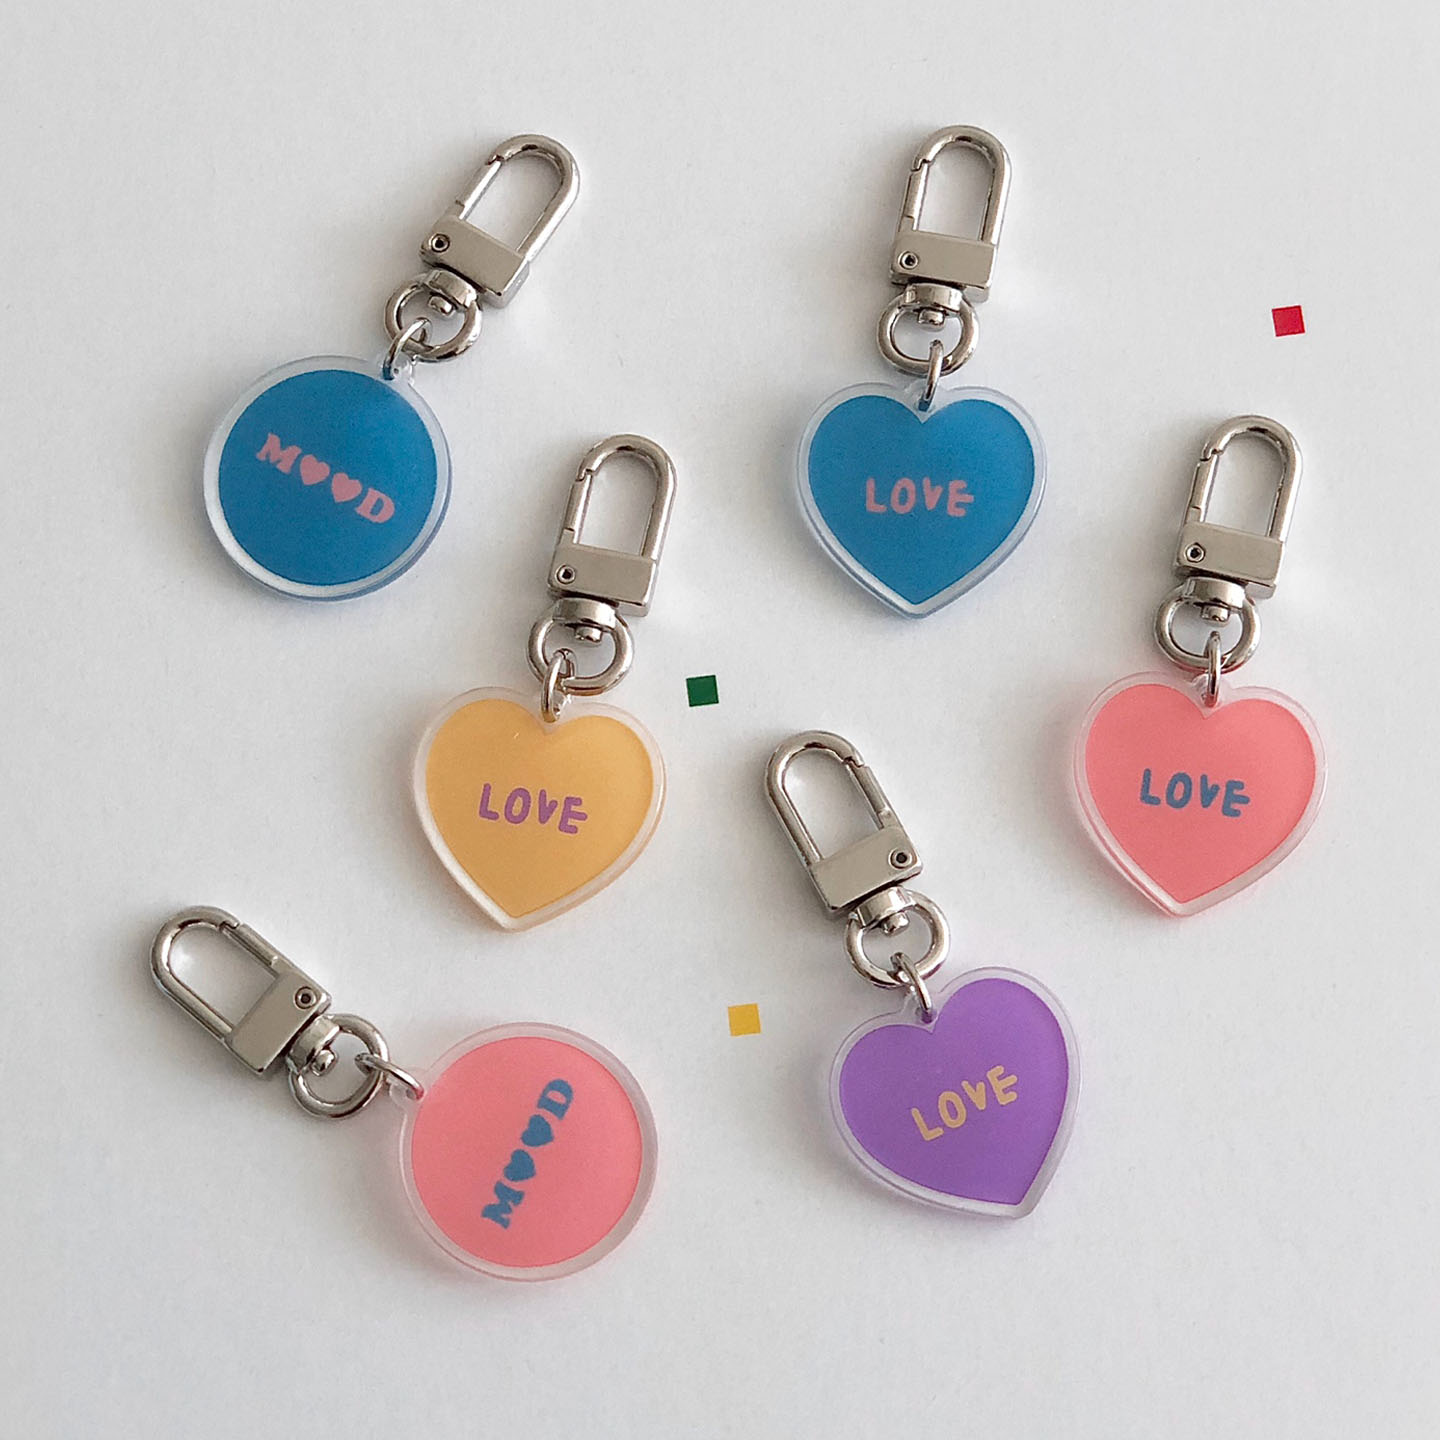 Love mood key ring (아크릴)